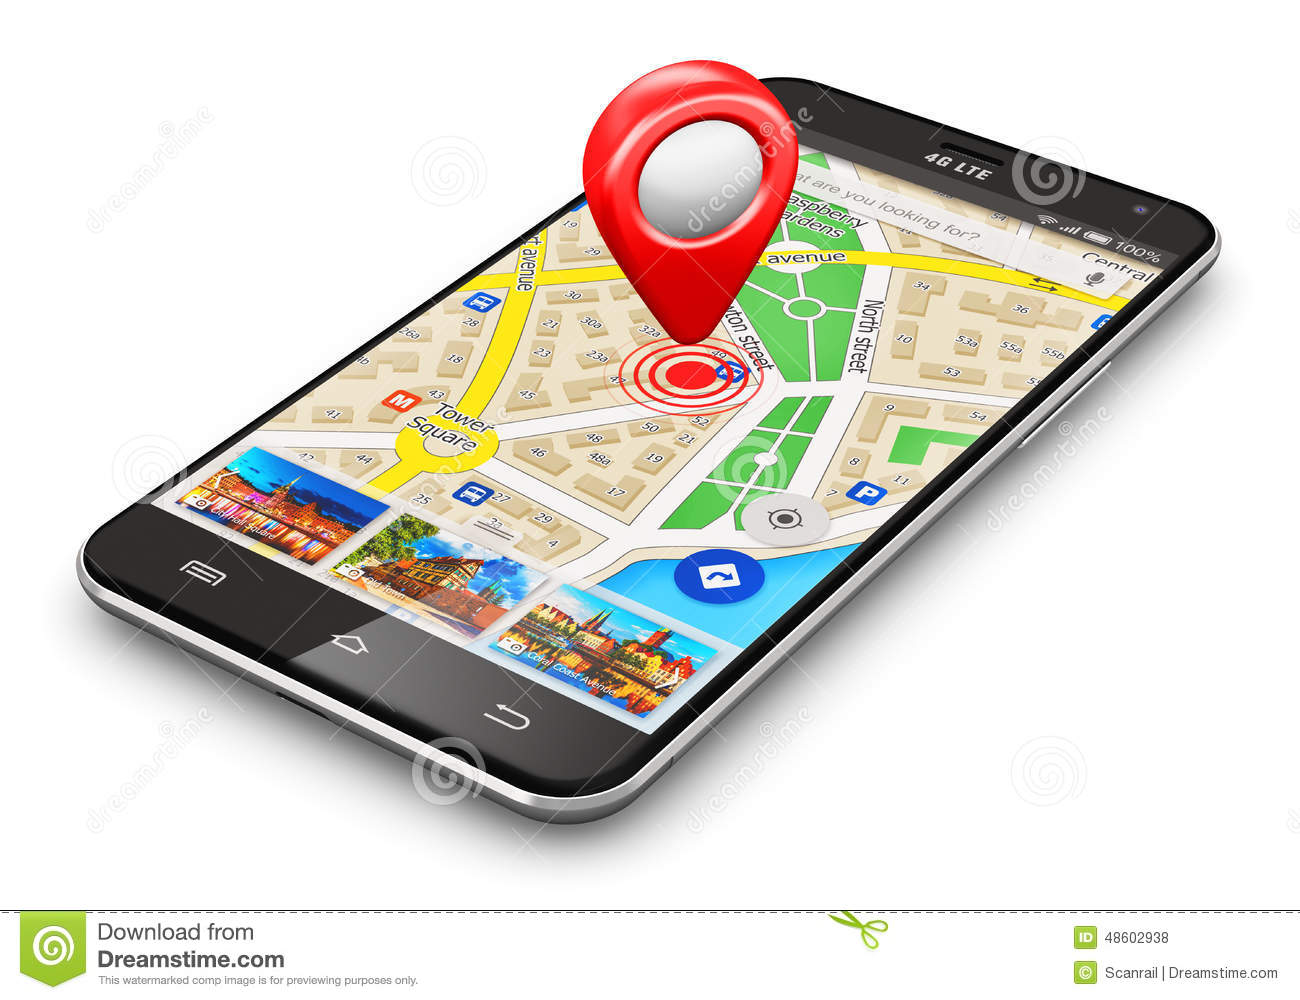 how to know location of mobile phone